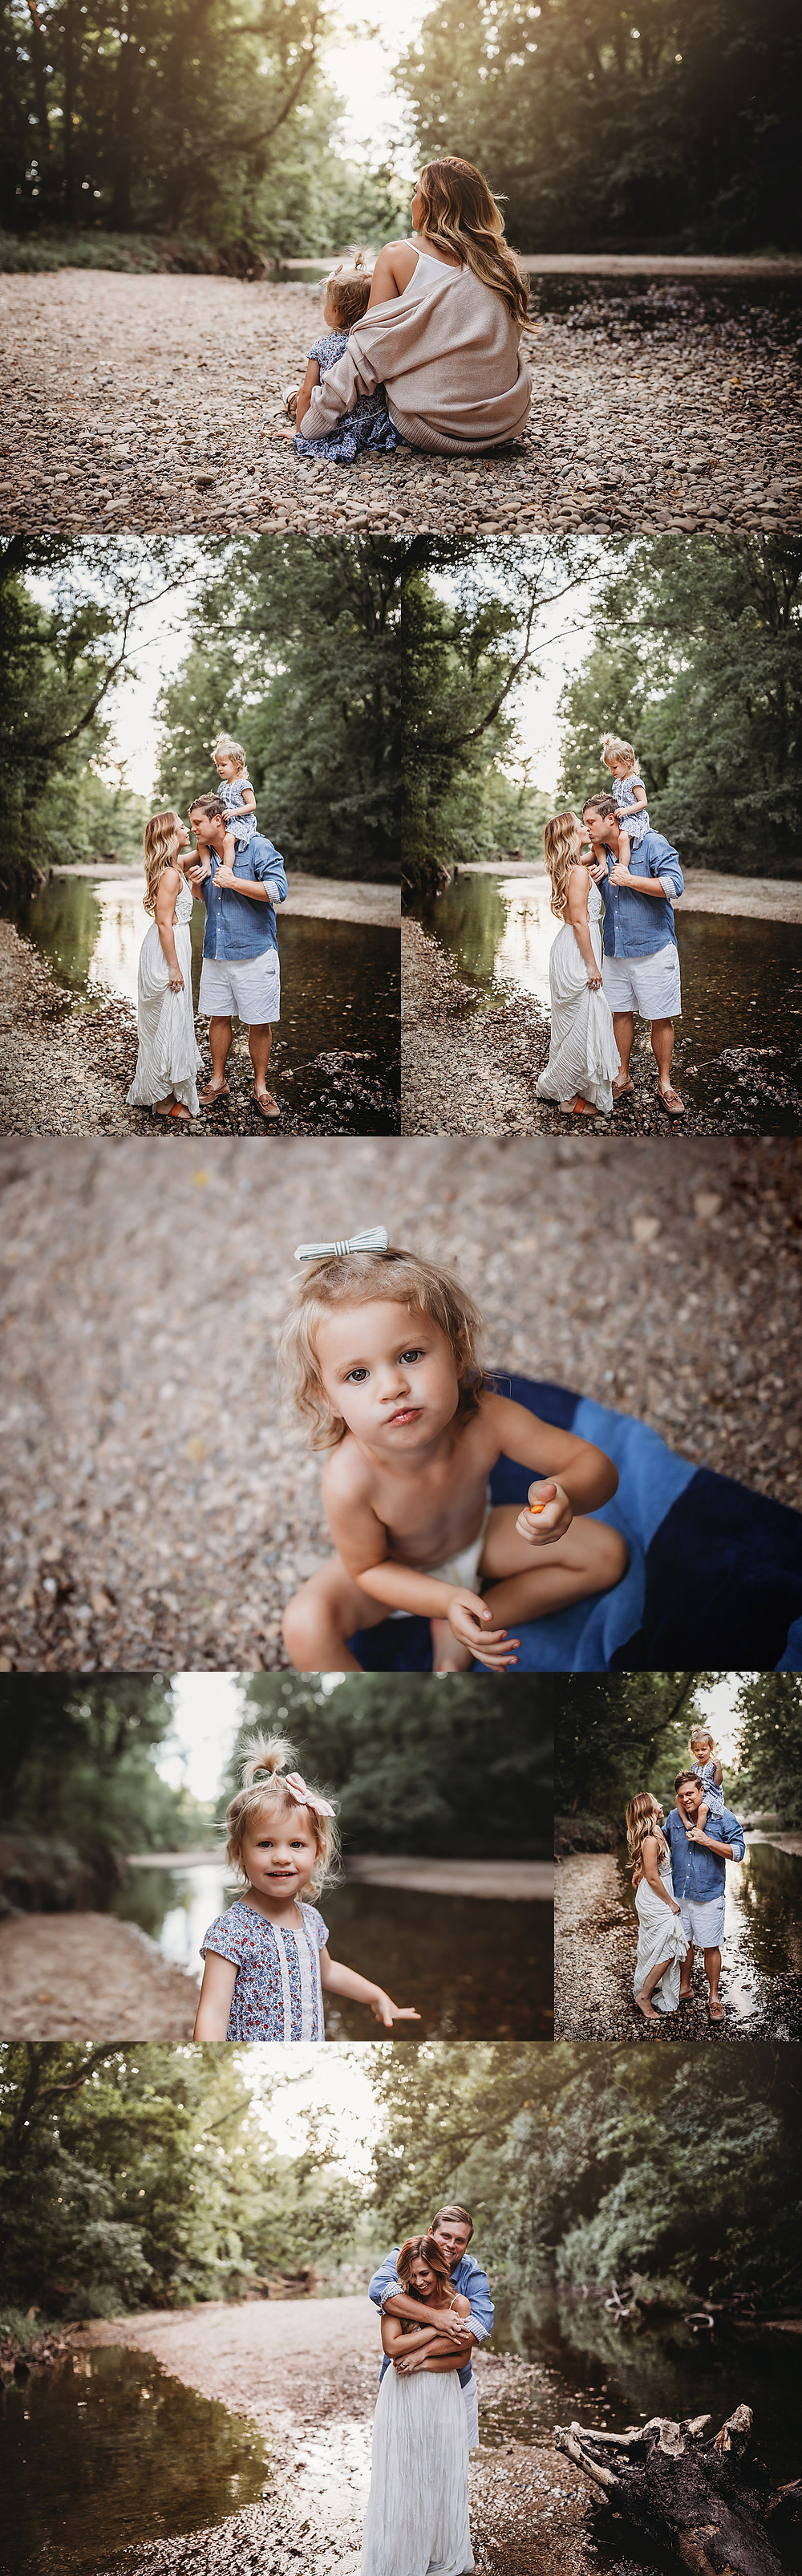 Indianapolis Family and Newborn Photographer, alex morris design